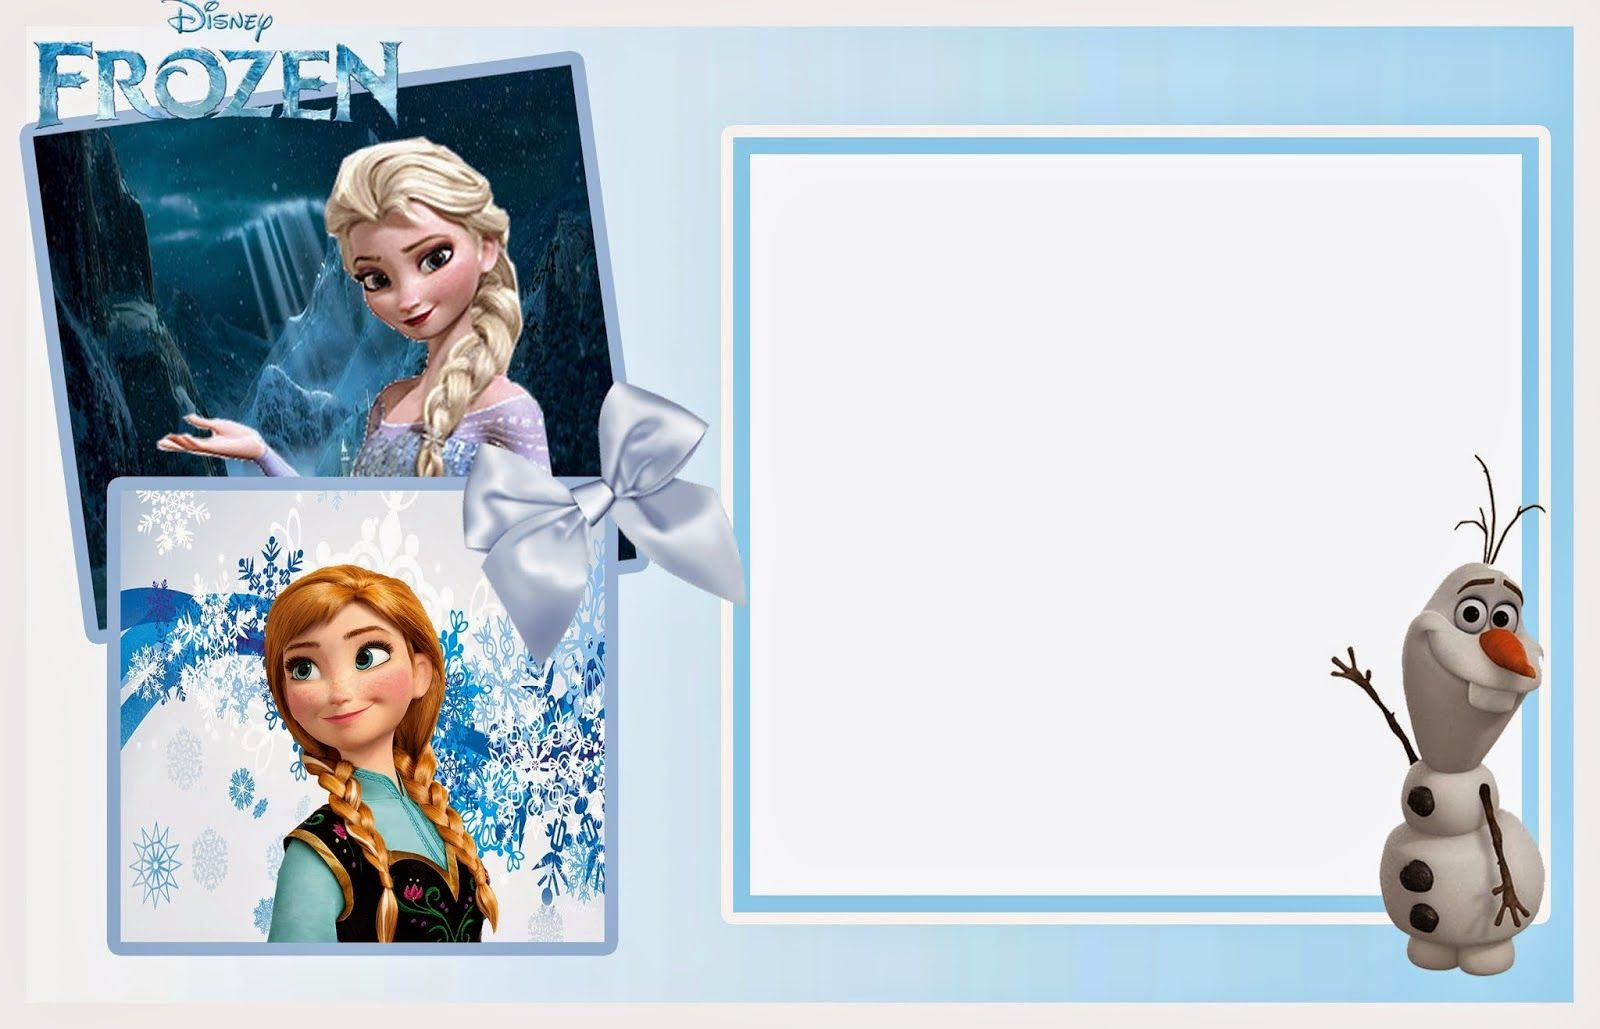 disney princess party invitation templates%0A microsoft resignation letter